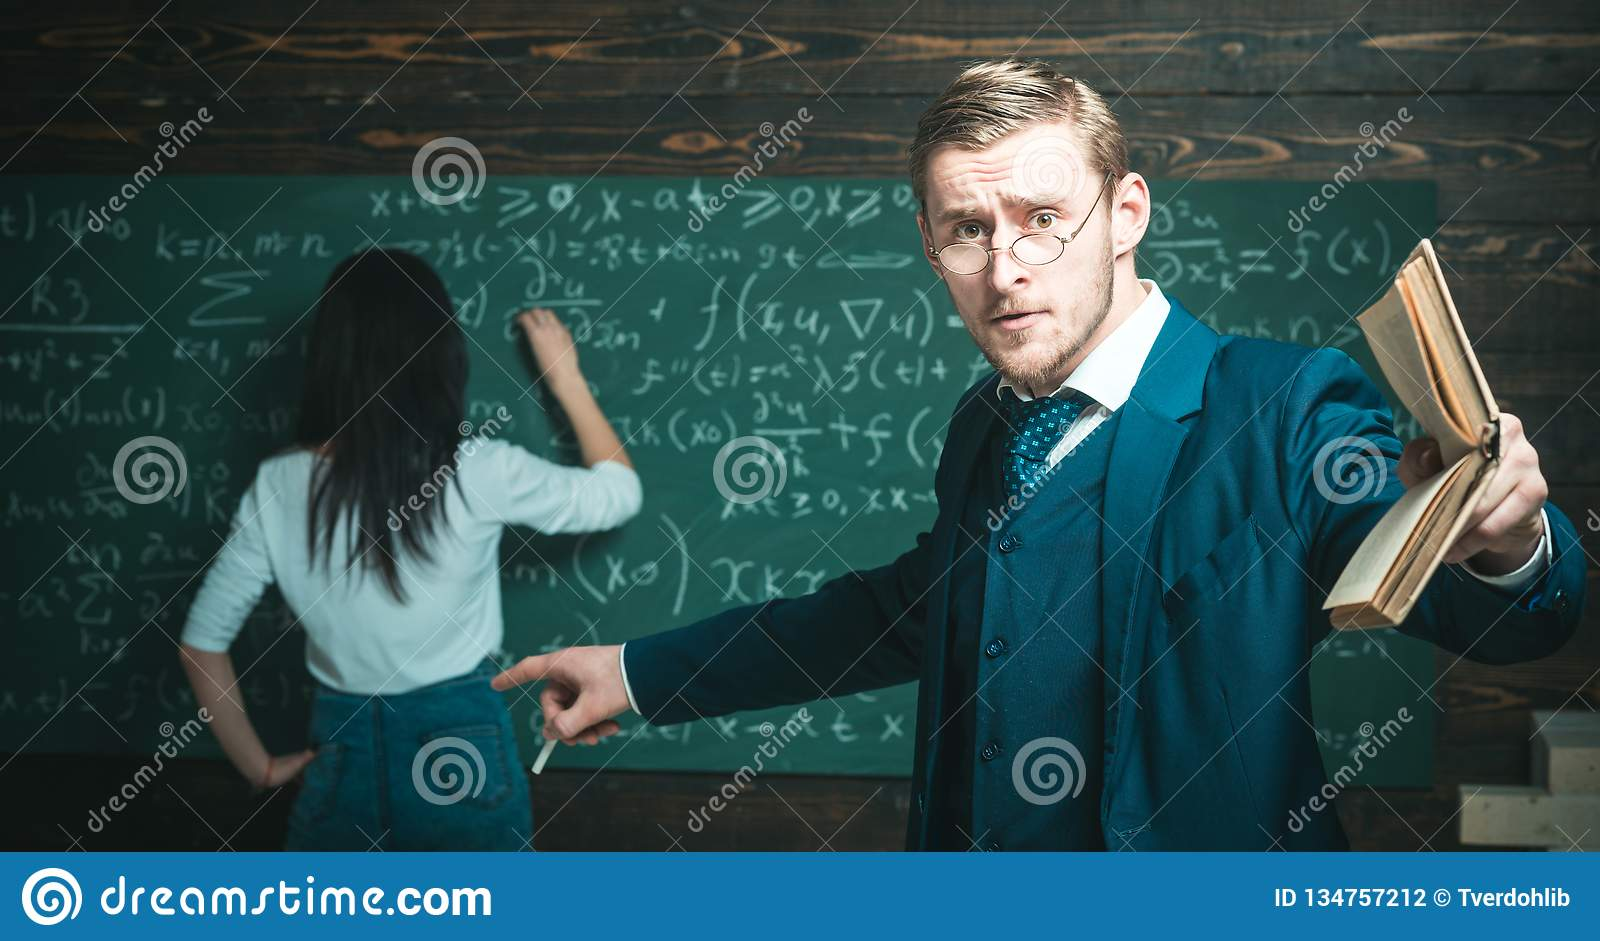 Education concept. Education of surprised teacher man point finger at woman student doing sums on chalkboard